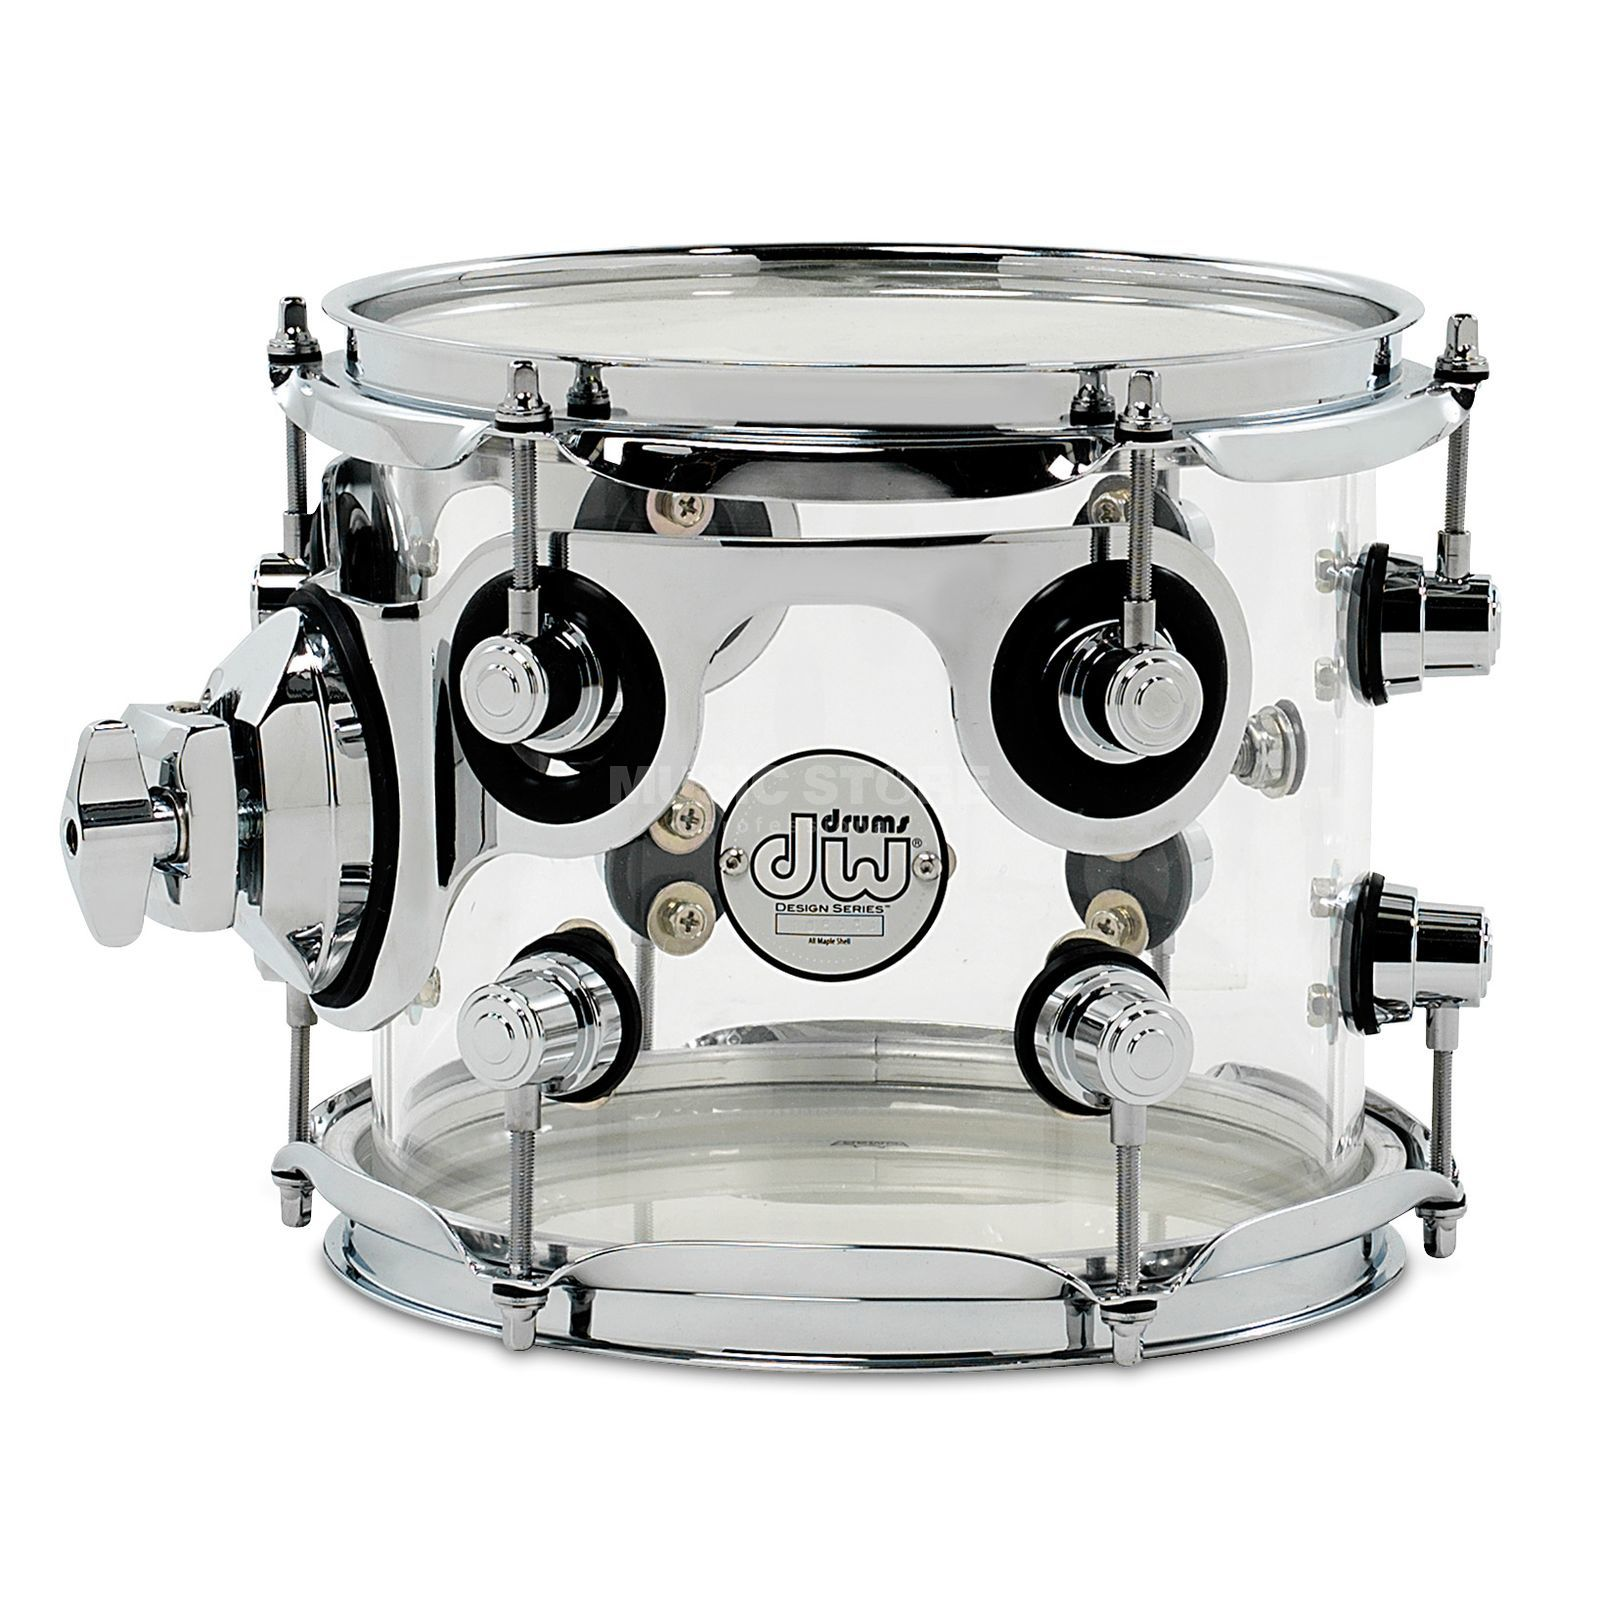 "Drum Workshop Design Acryl Tom 8""x7"", Clear Produktbild"